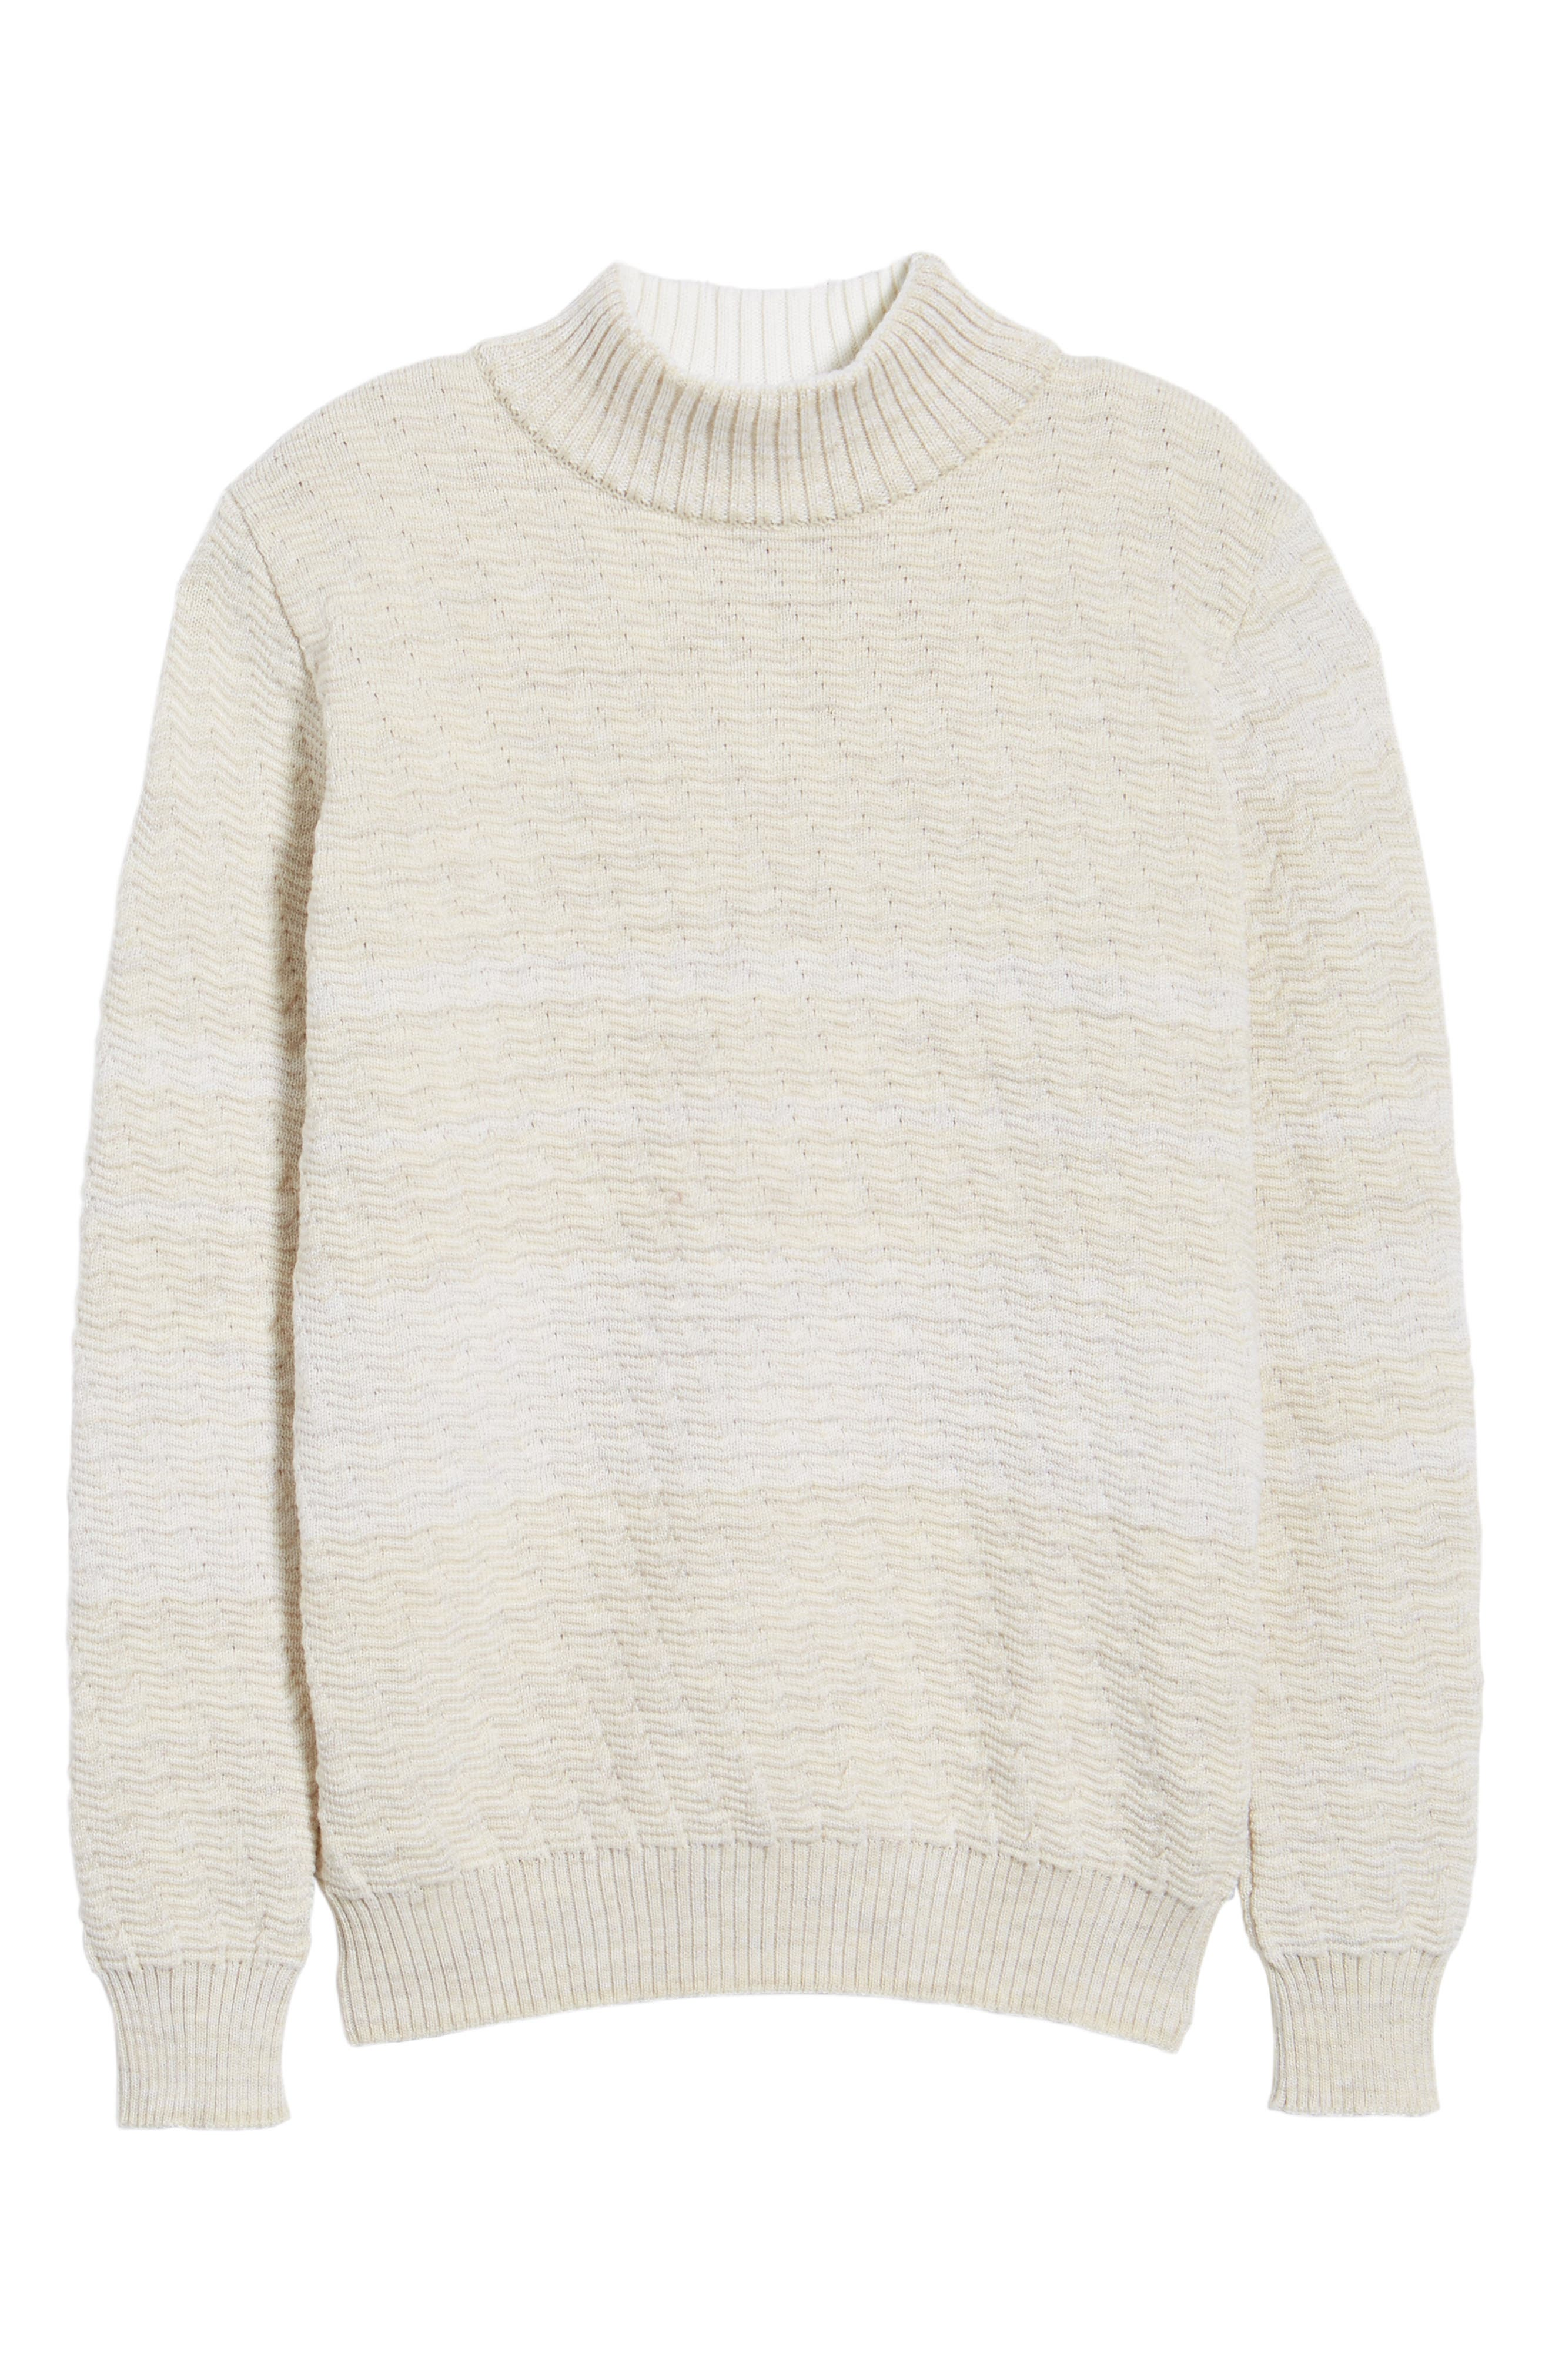 Evident Wool Turtleneck Sweater,                             Alternate thumbnail 6, color,                             Raw